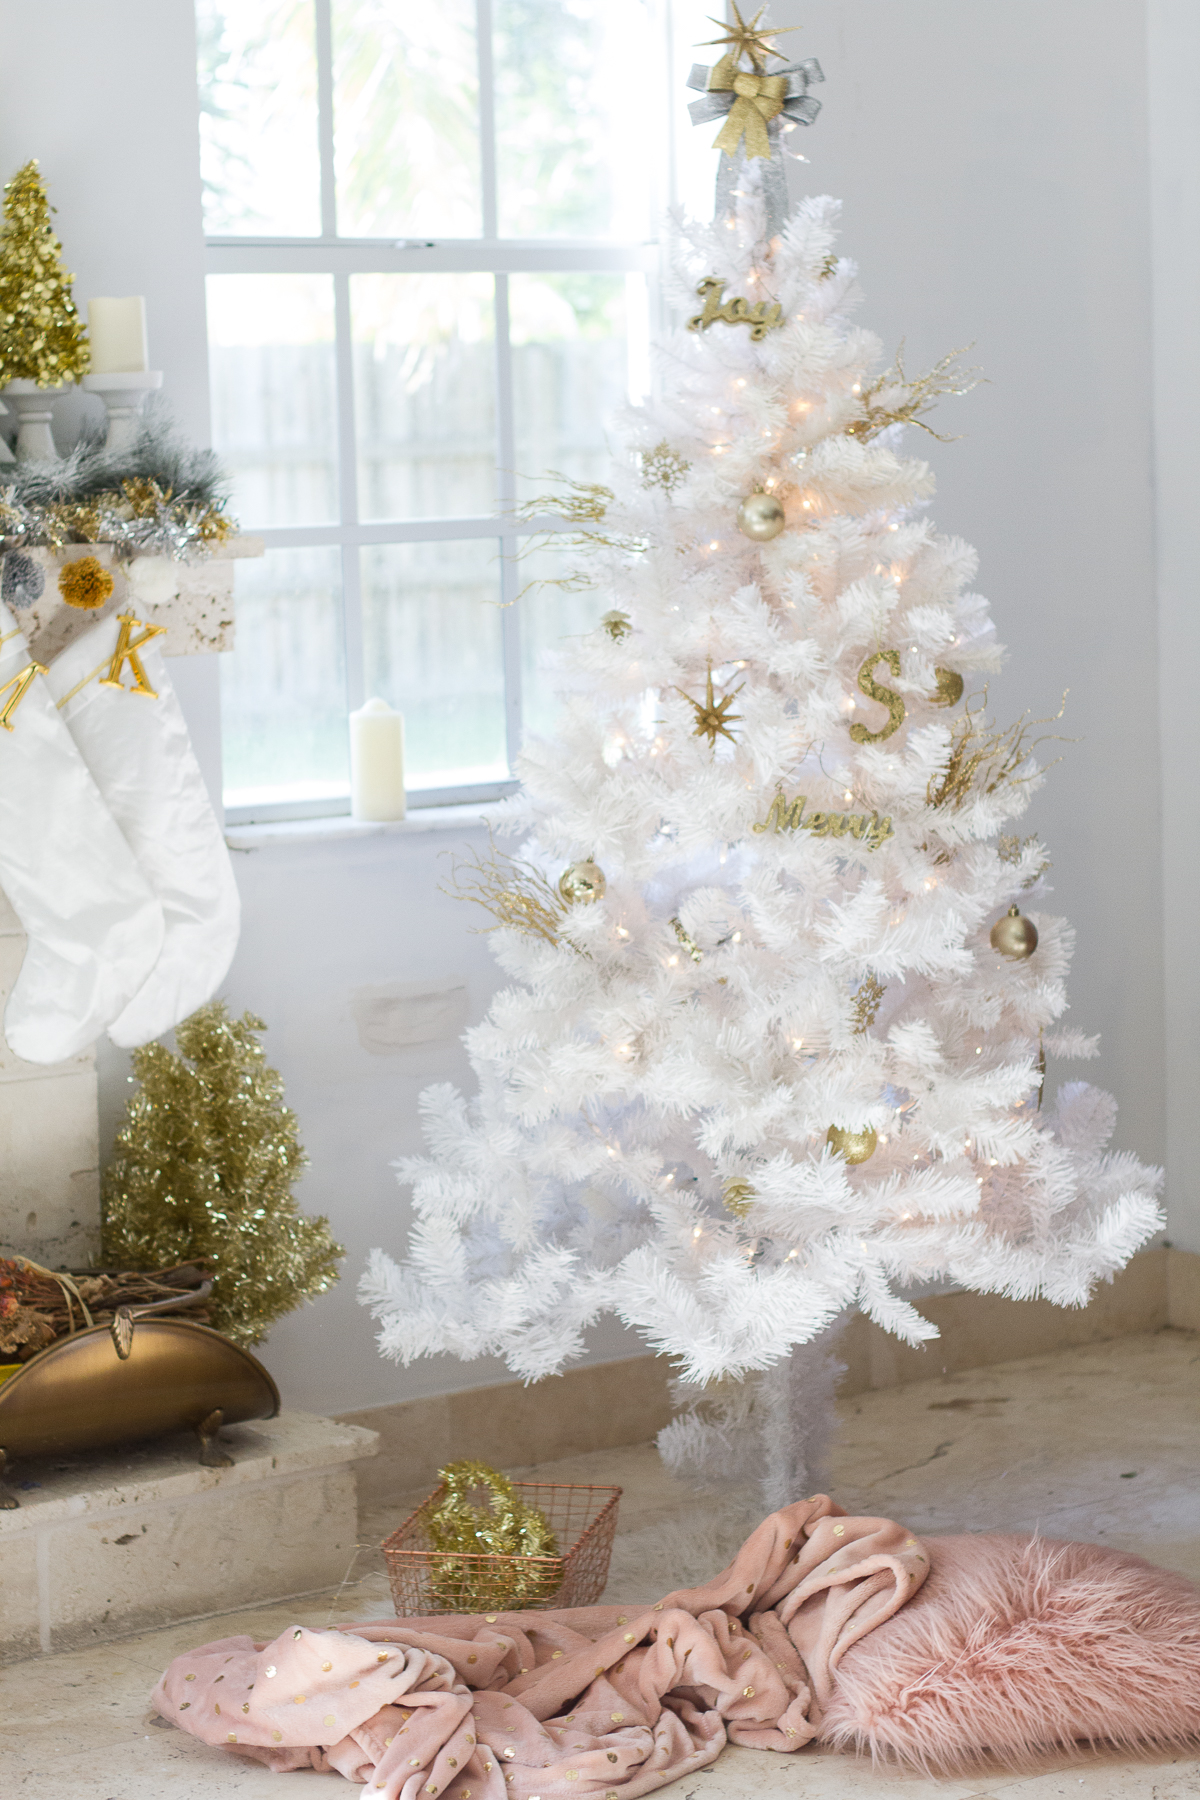 White Christmas tree decor